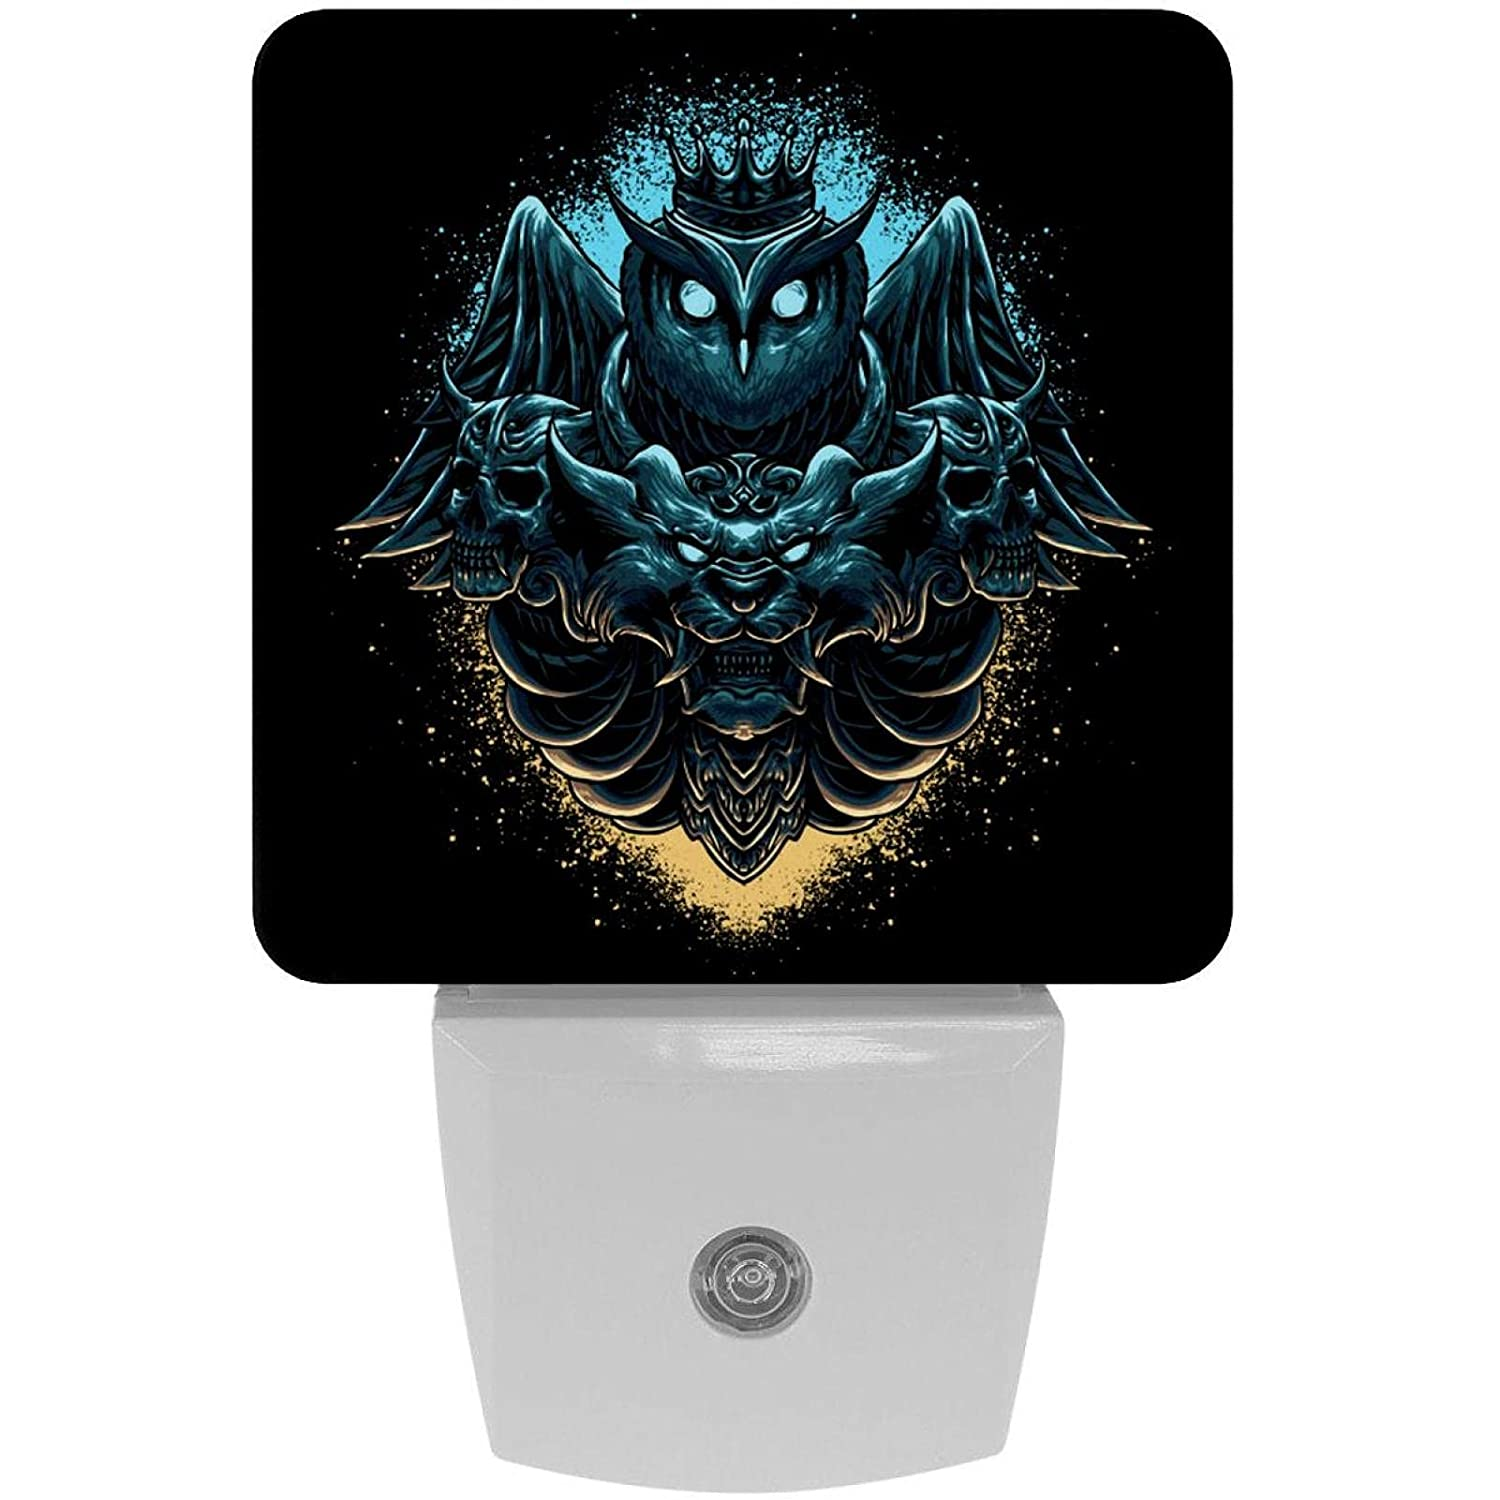 Bedside Lamp Sale special price Owl and Lion favorite Head Plug-in LED Night with Dusk Light